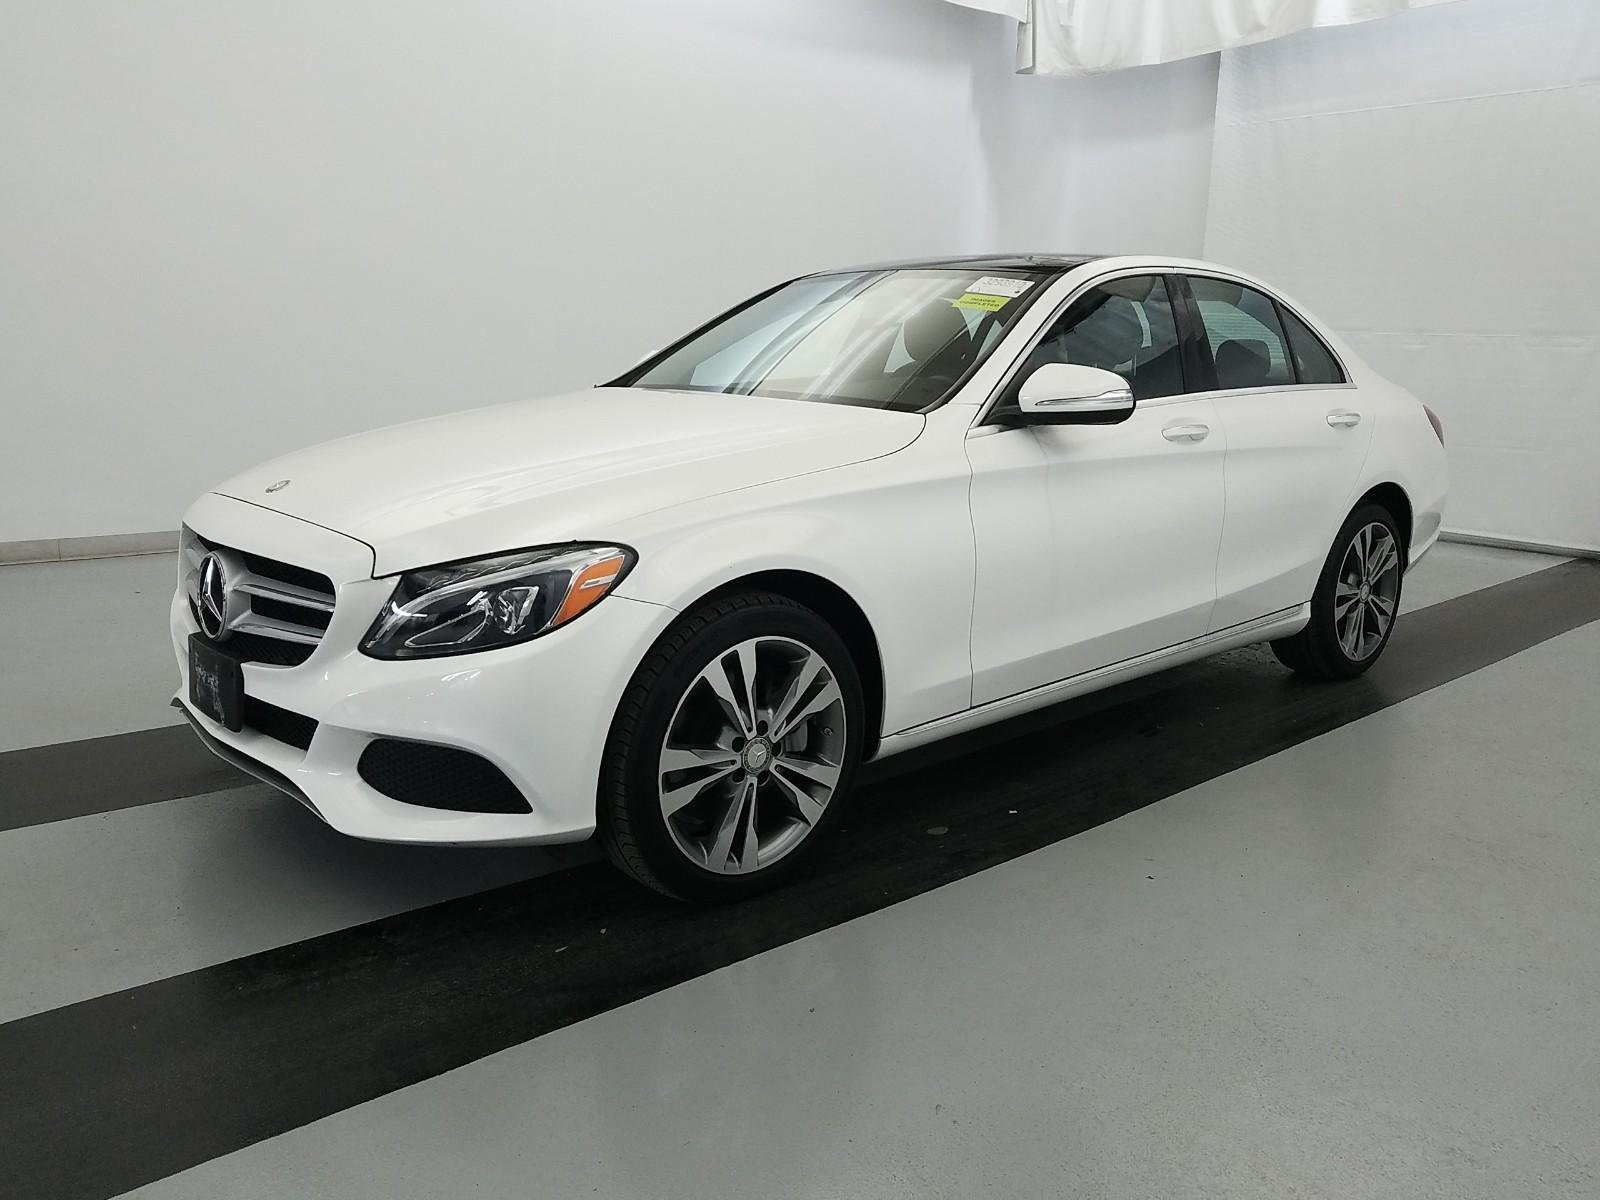 Pre Owned 2015 Mercedes Benz C Class C 300 4dr Car in Parkersburg